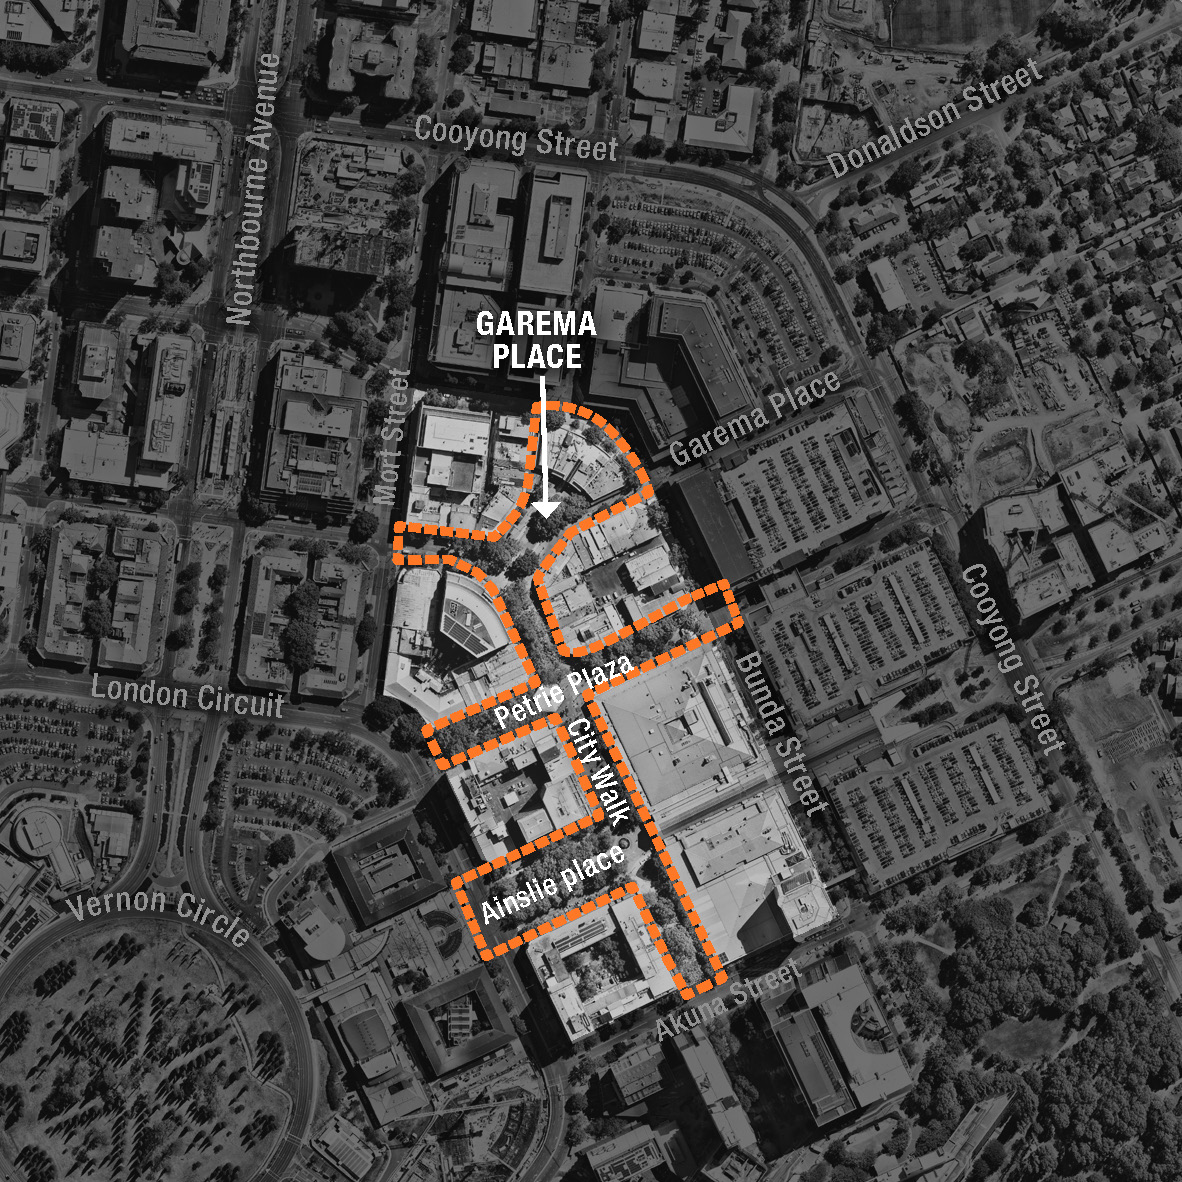 Map showing project precinct in context of surrounding streets